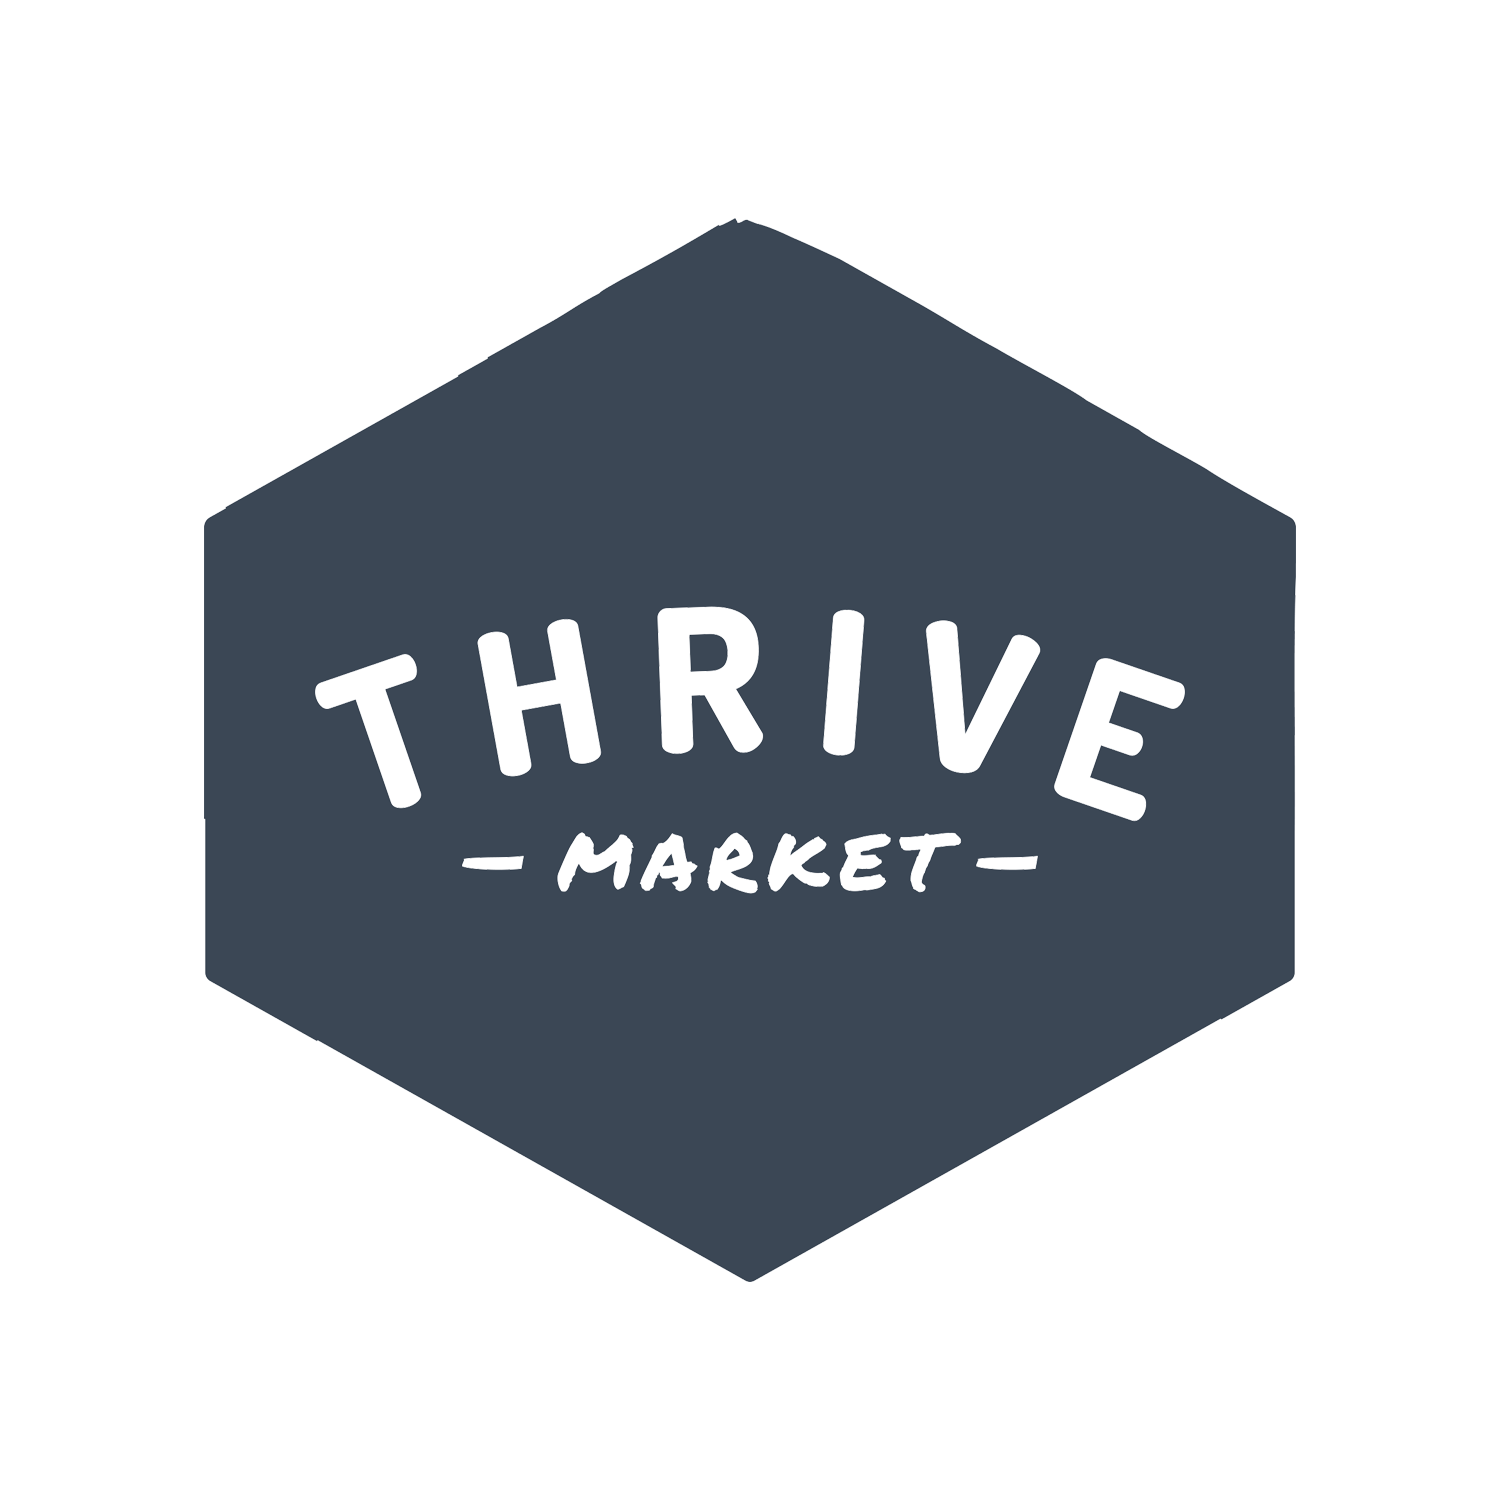 Thrive Market - I've been using their Lavender dish soap and it smells amazing. They also have a toilet bowl cleaner with Tea Tree and Eucalyptus which are both natural disinfectants and freshen up the bathroom.